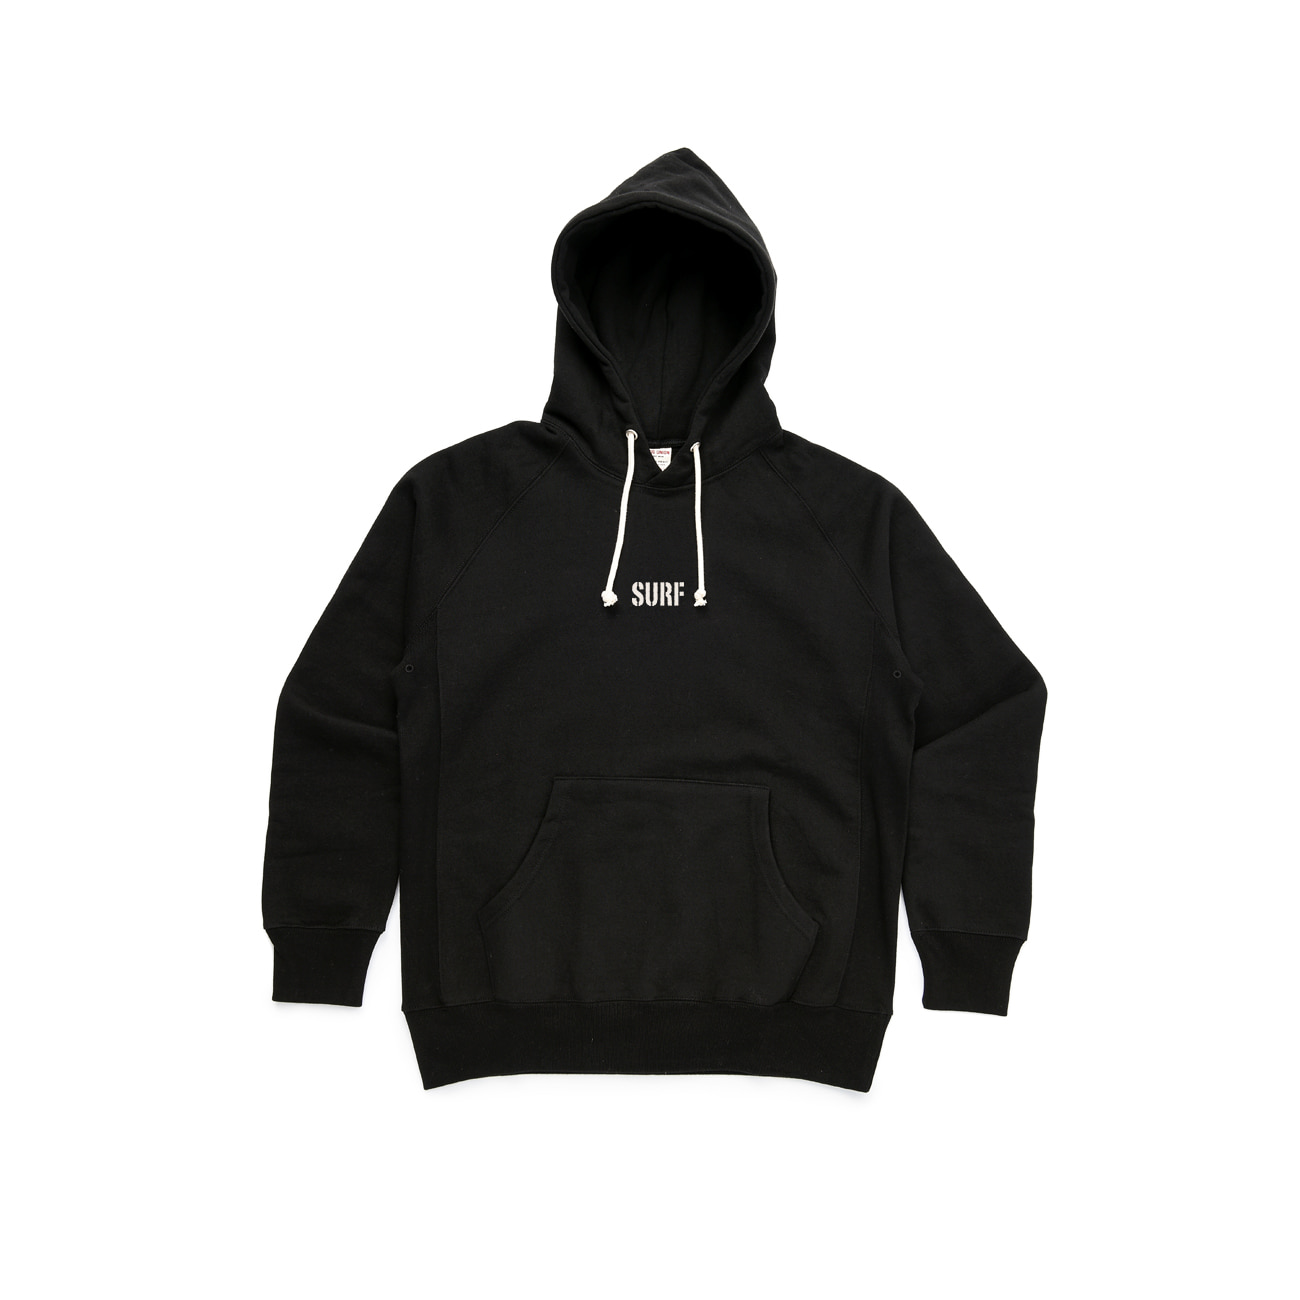 BIG UNION X BUND Let Us SURF Pullover Hood